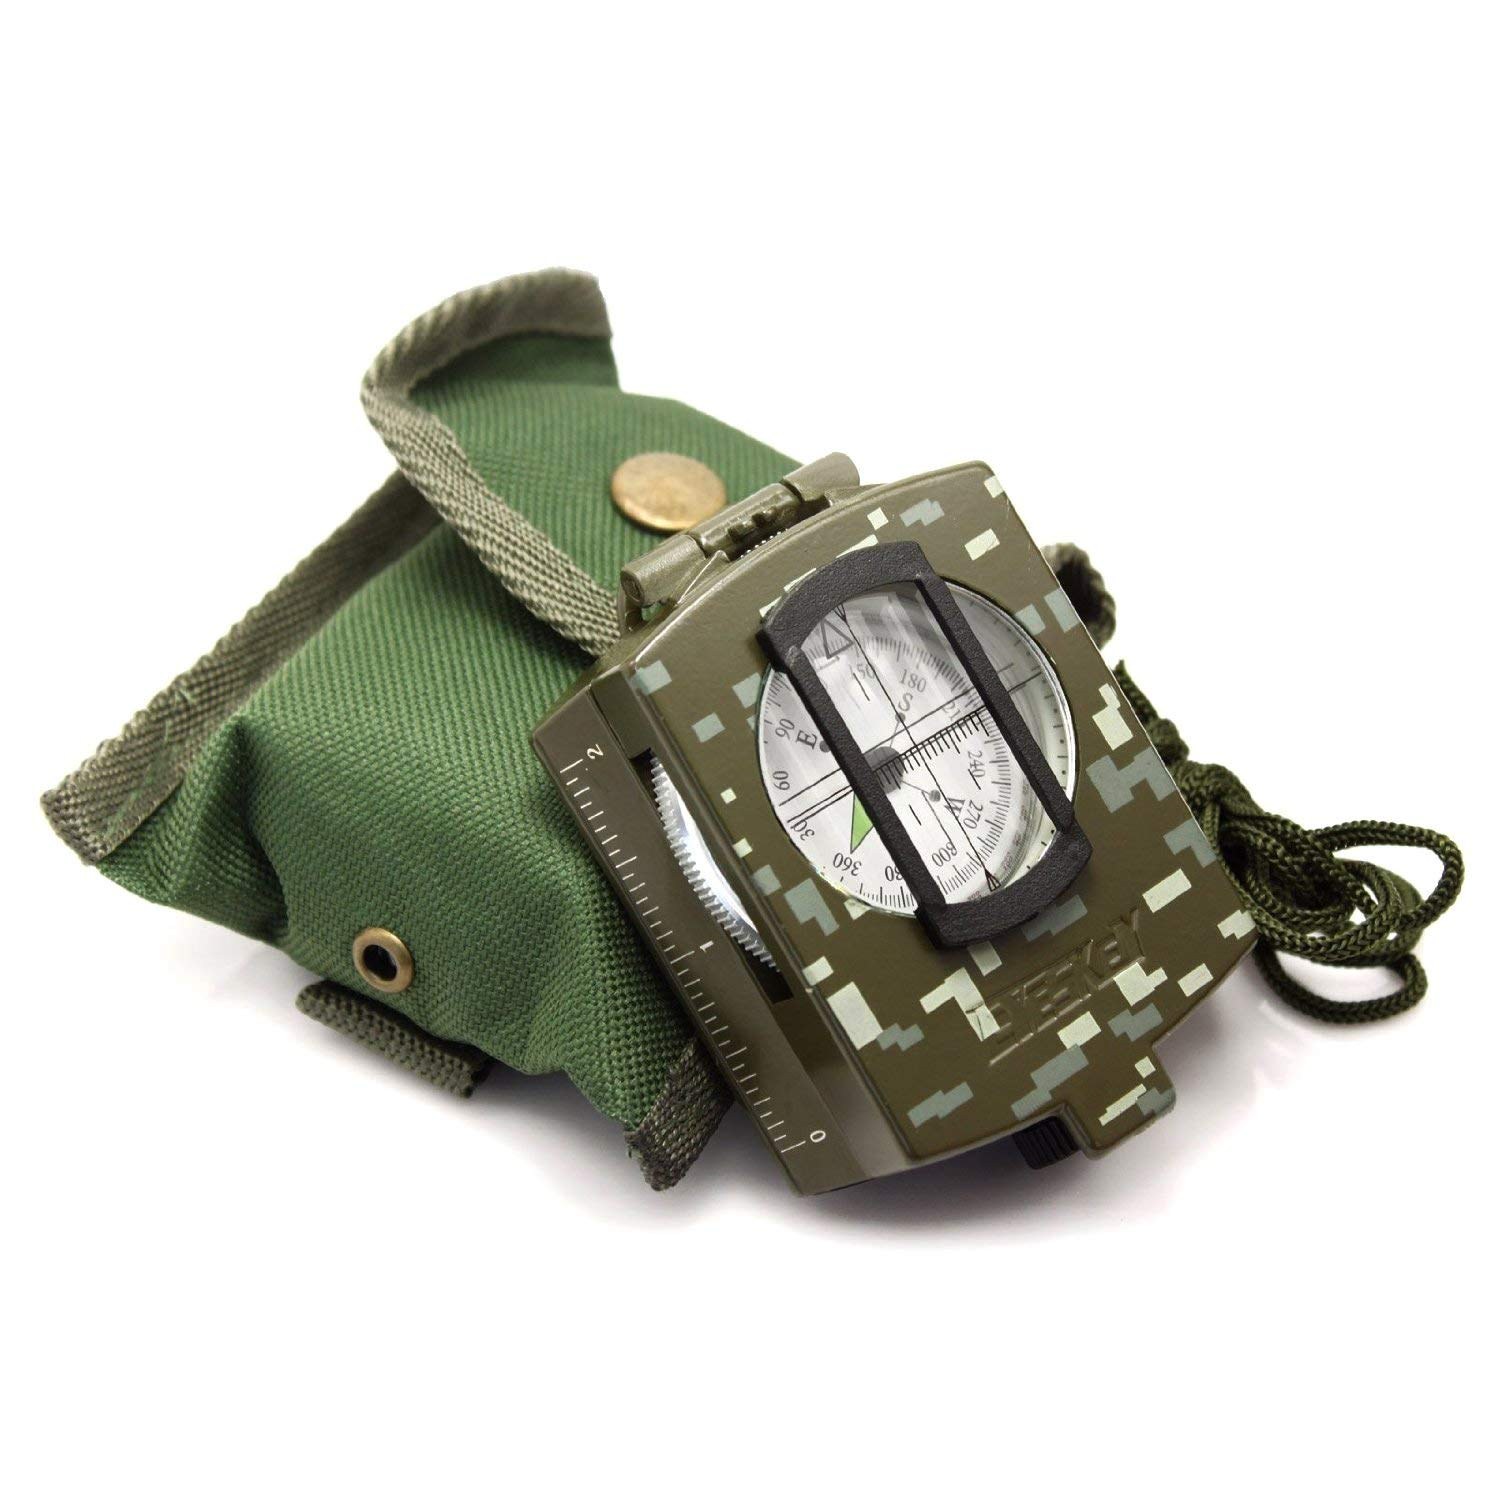 Eyeskey Multifunctional Military Army Aluminum Alloy Compass